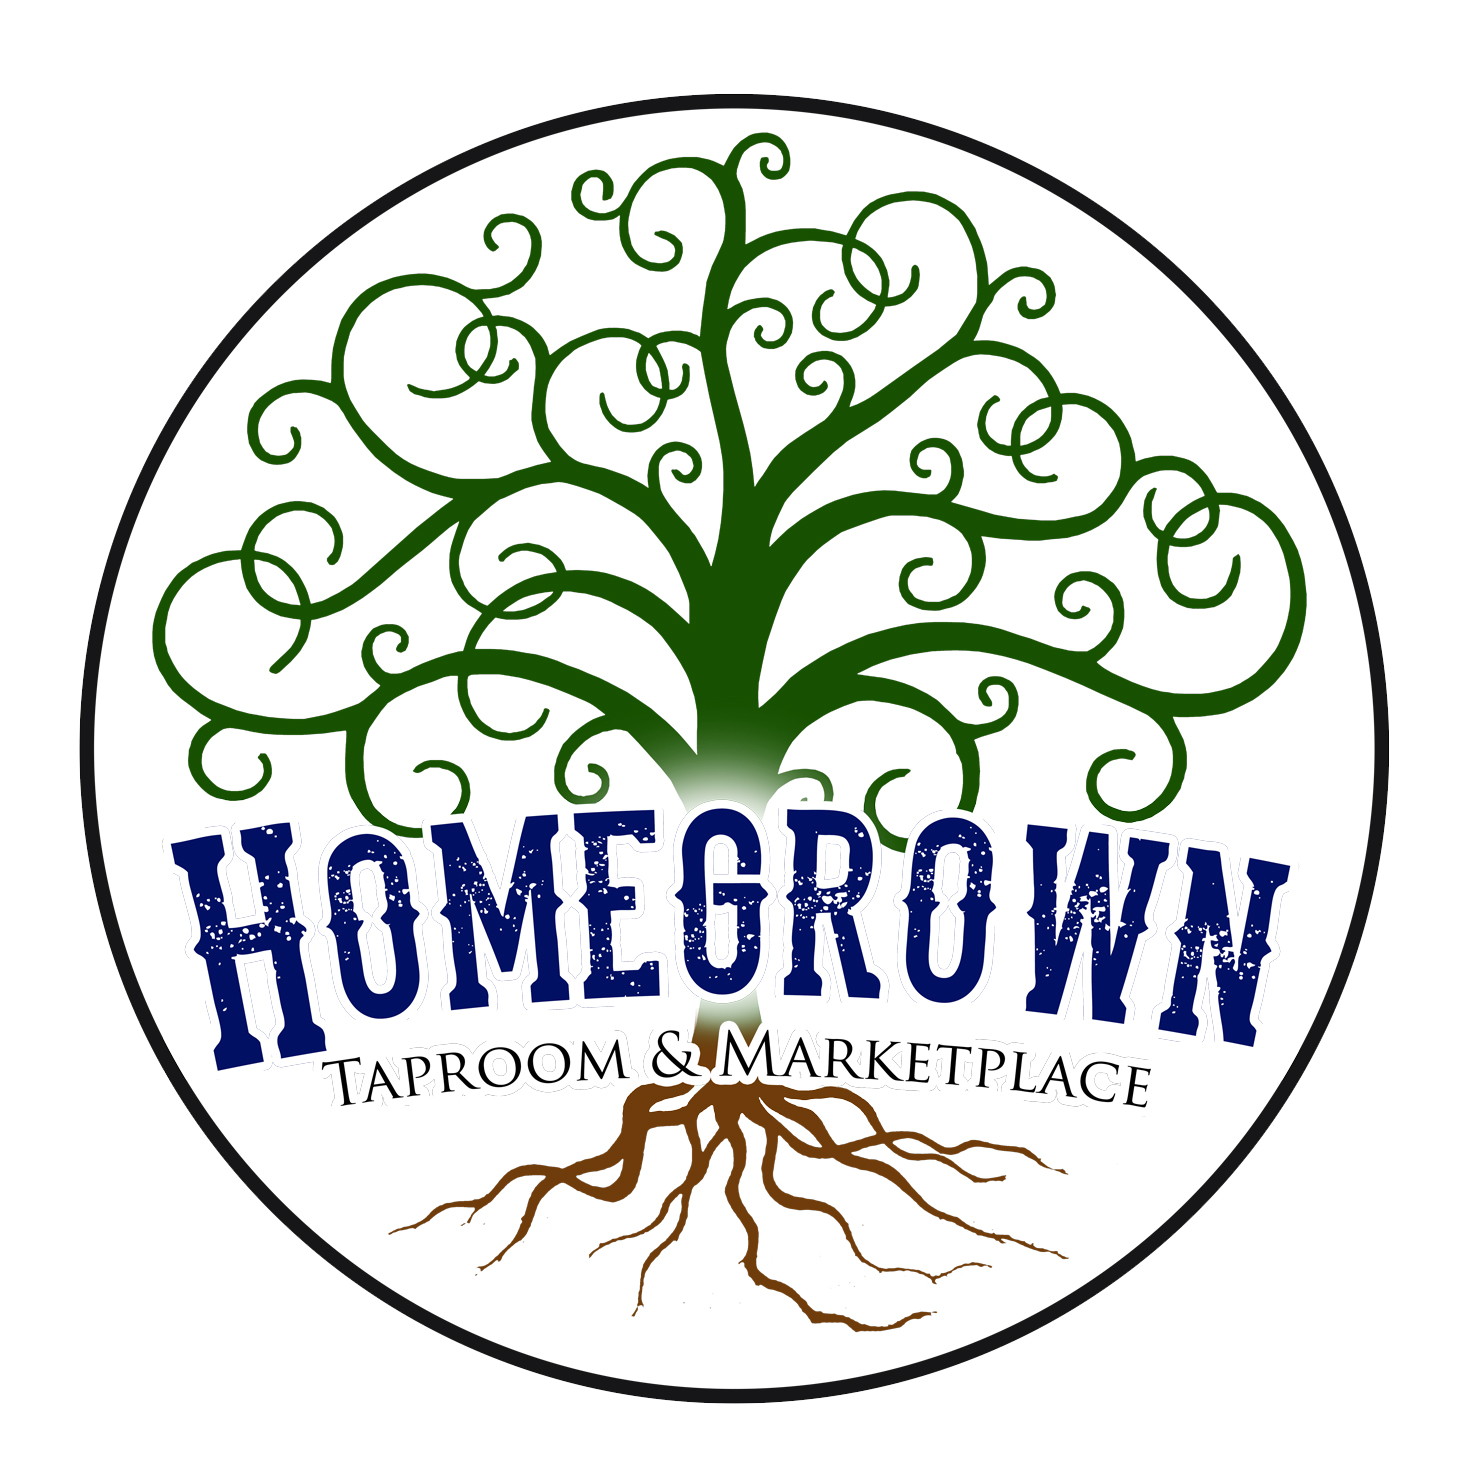 Marketplace drawing easy. Home homegrown taproom